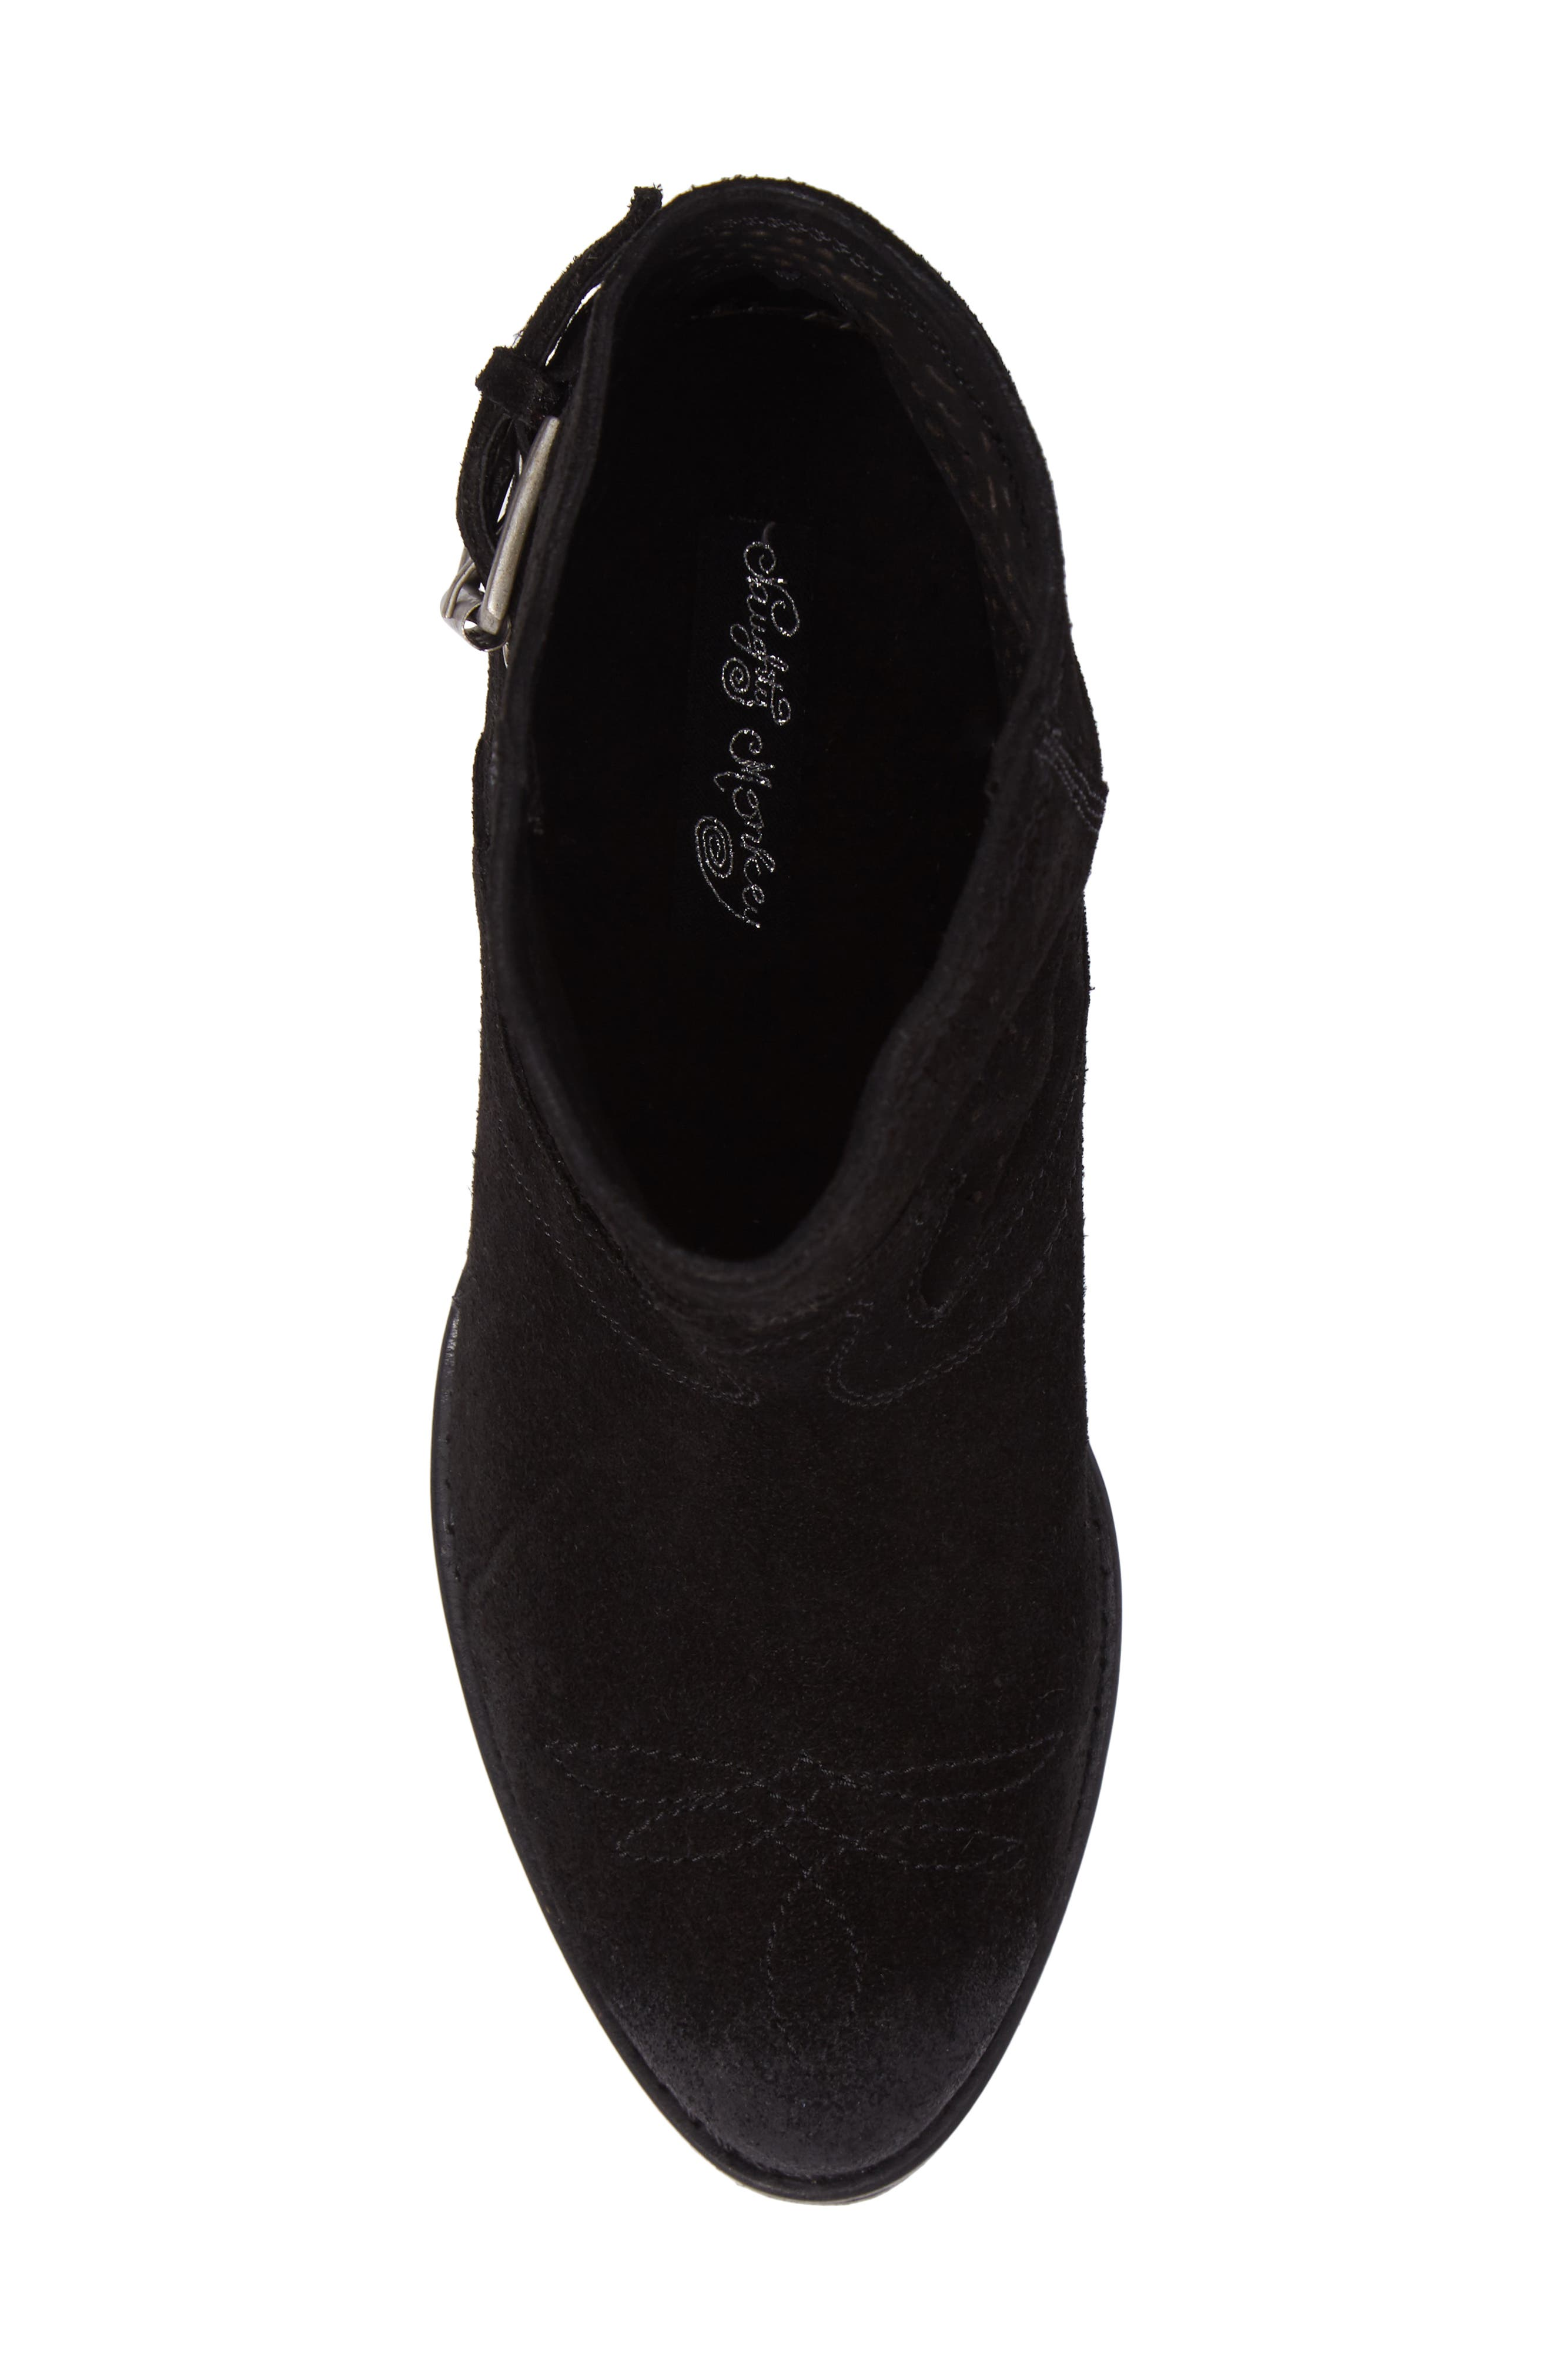 Zoey Perforated Bootie,                             Alternate thumbnail 5, color,                             Black Suede